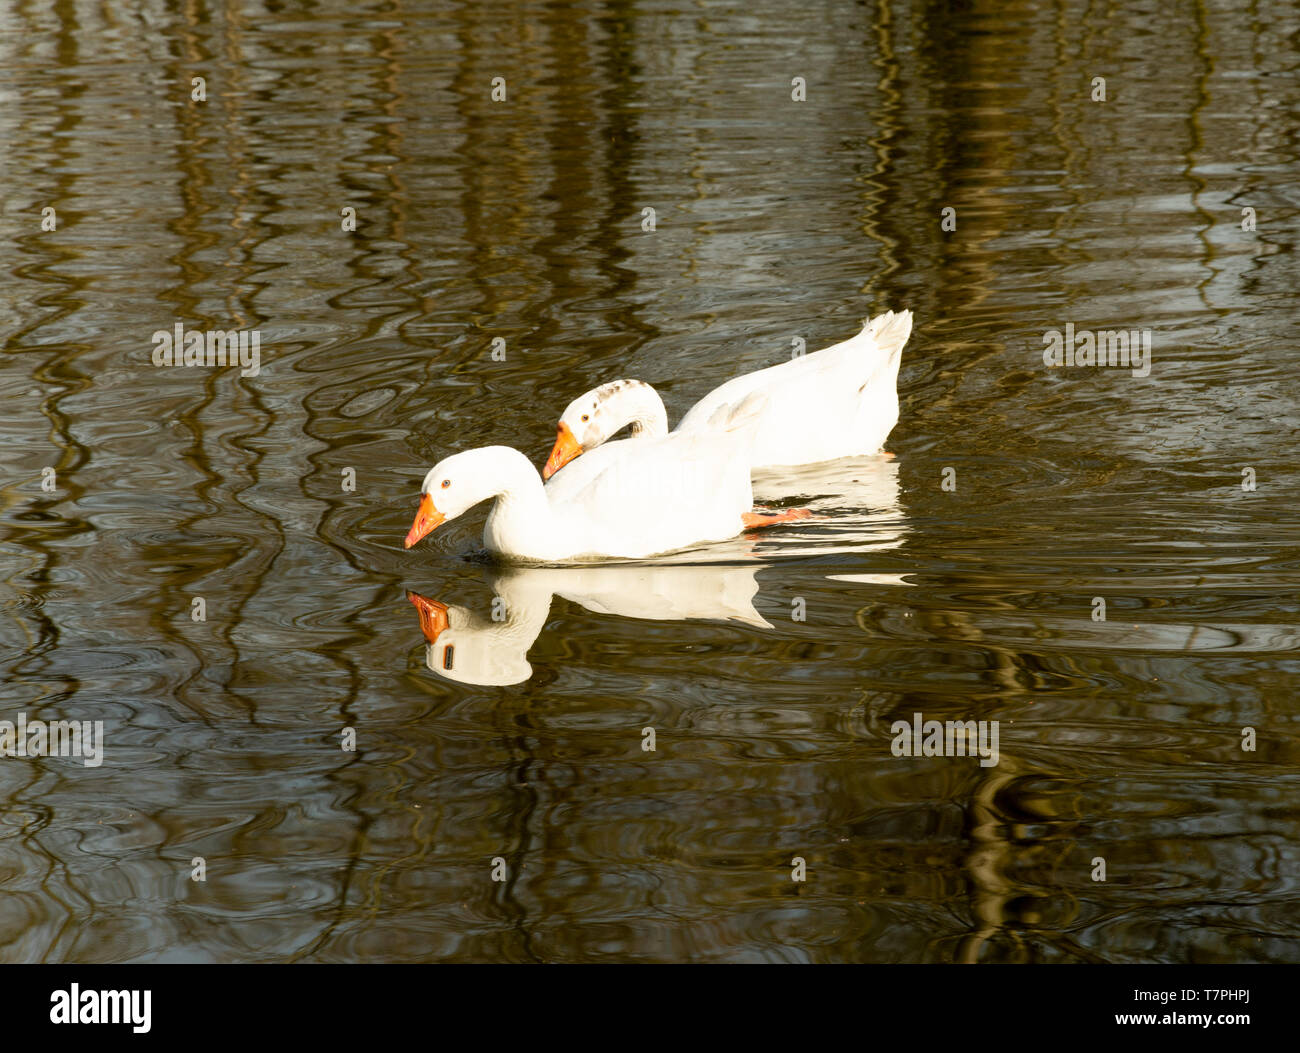 Two geese peaceful floating on the water - Stock Image